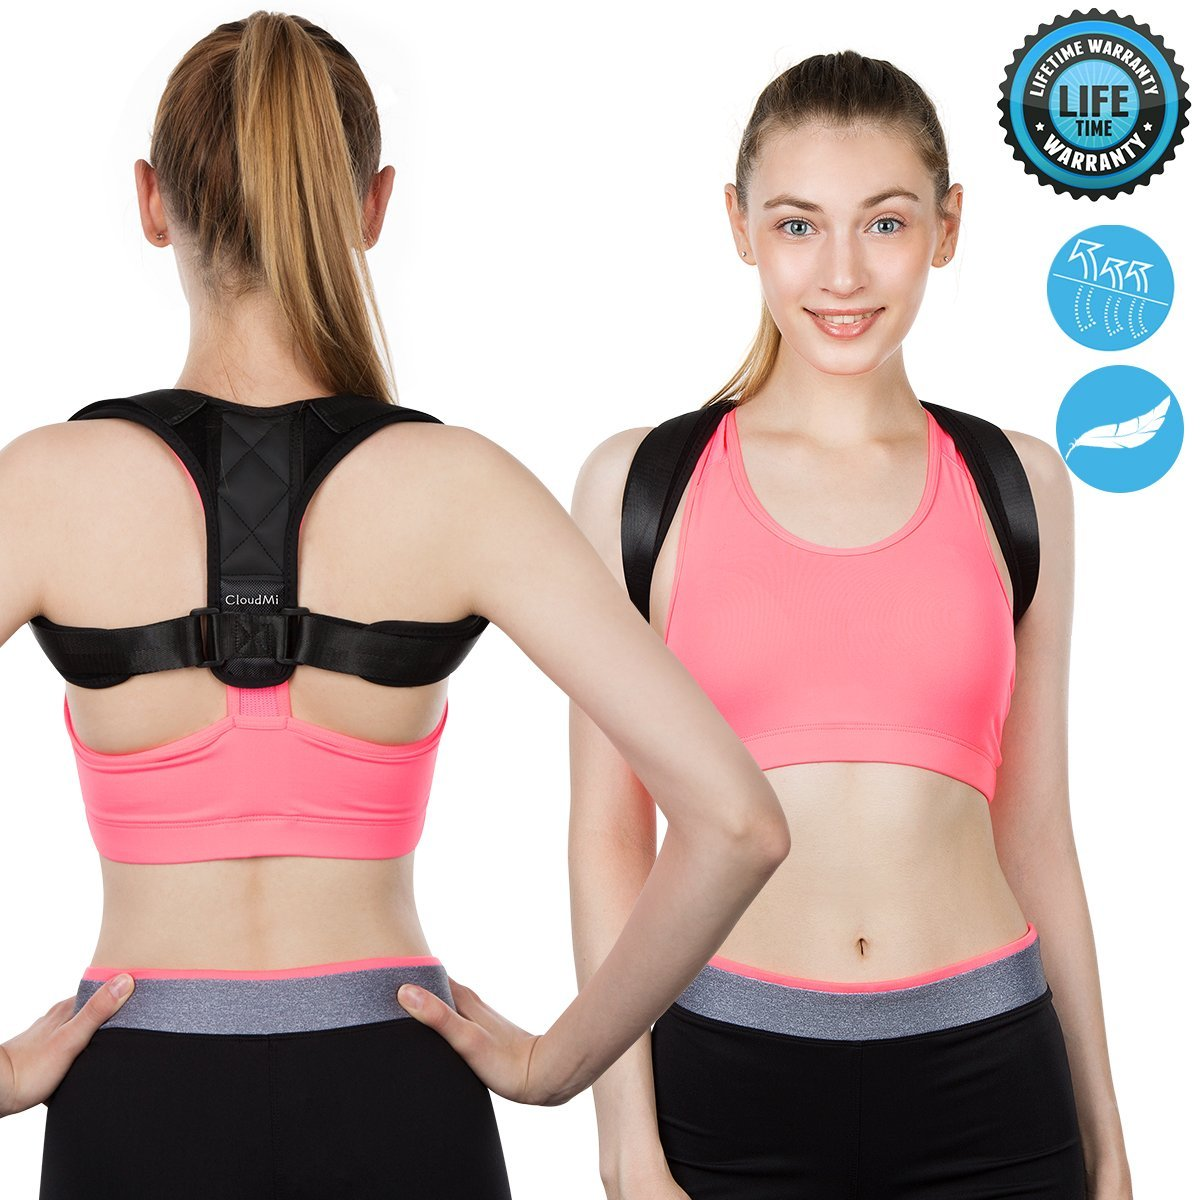 Posture Corrector, Posture Back Brace for Posture Belt Back Shoulder Posture Corrector for Women Men Adjustable Posture Strap Back Support Posture Corrector Brace for Back Shoulder Pain Relief